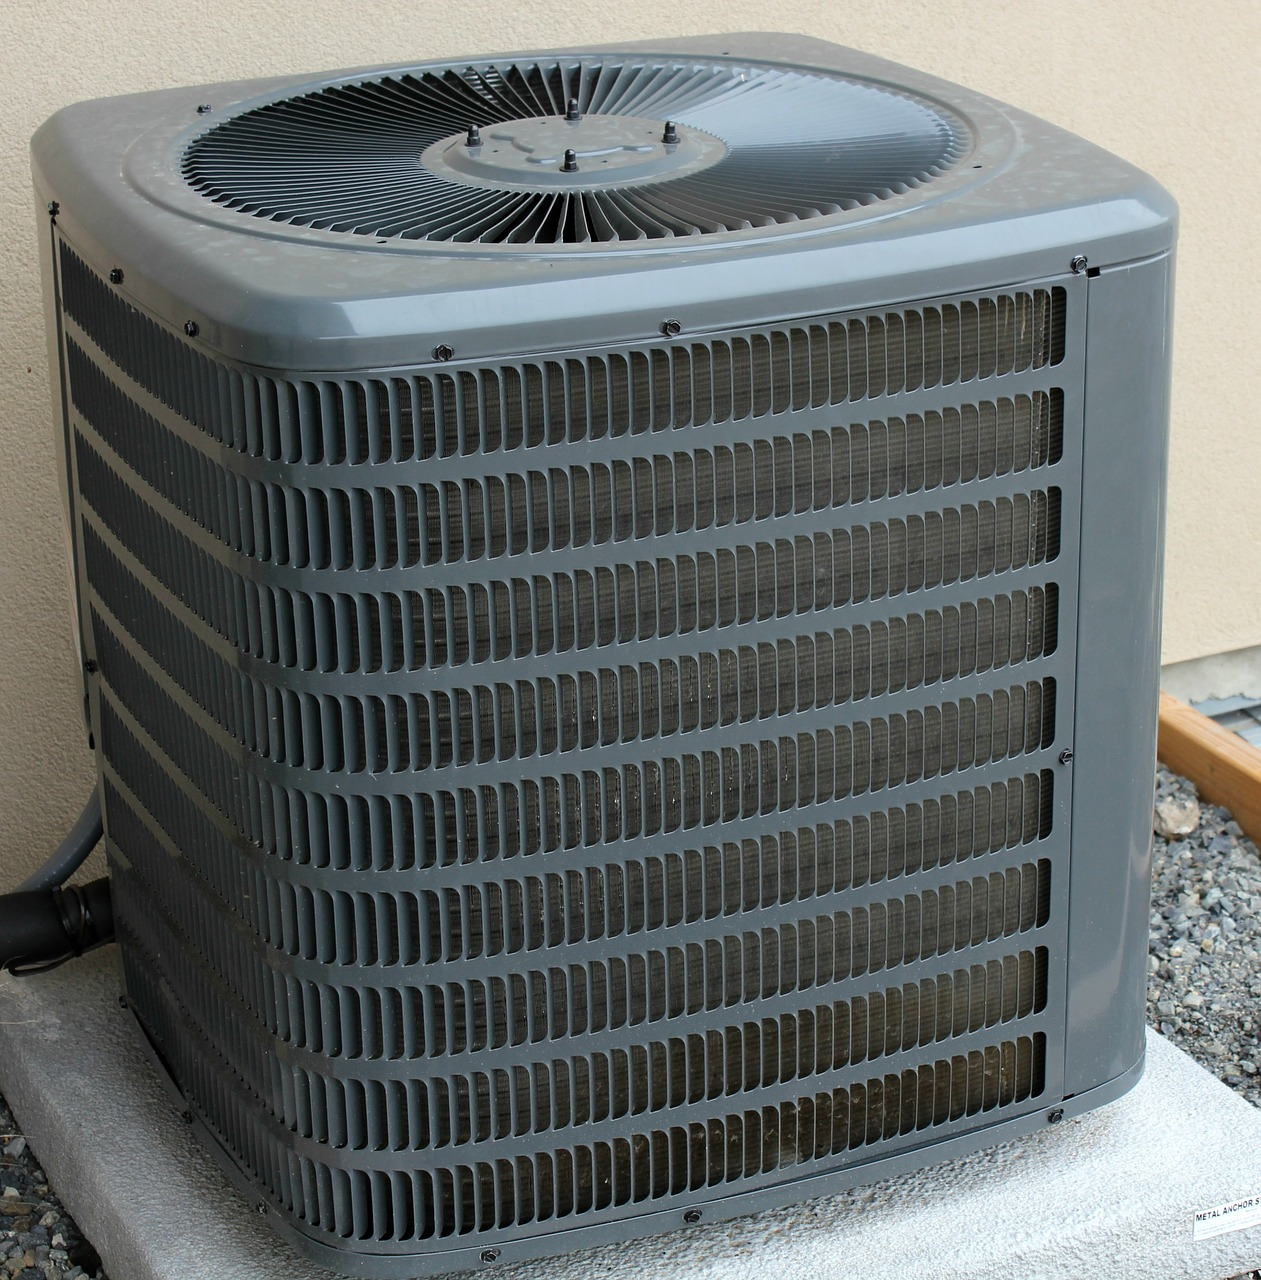 The Best Selling Air Conditioner In India